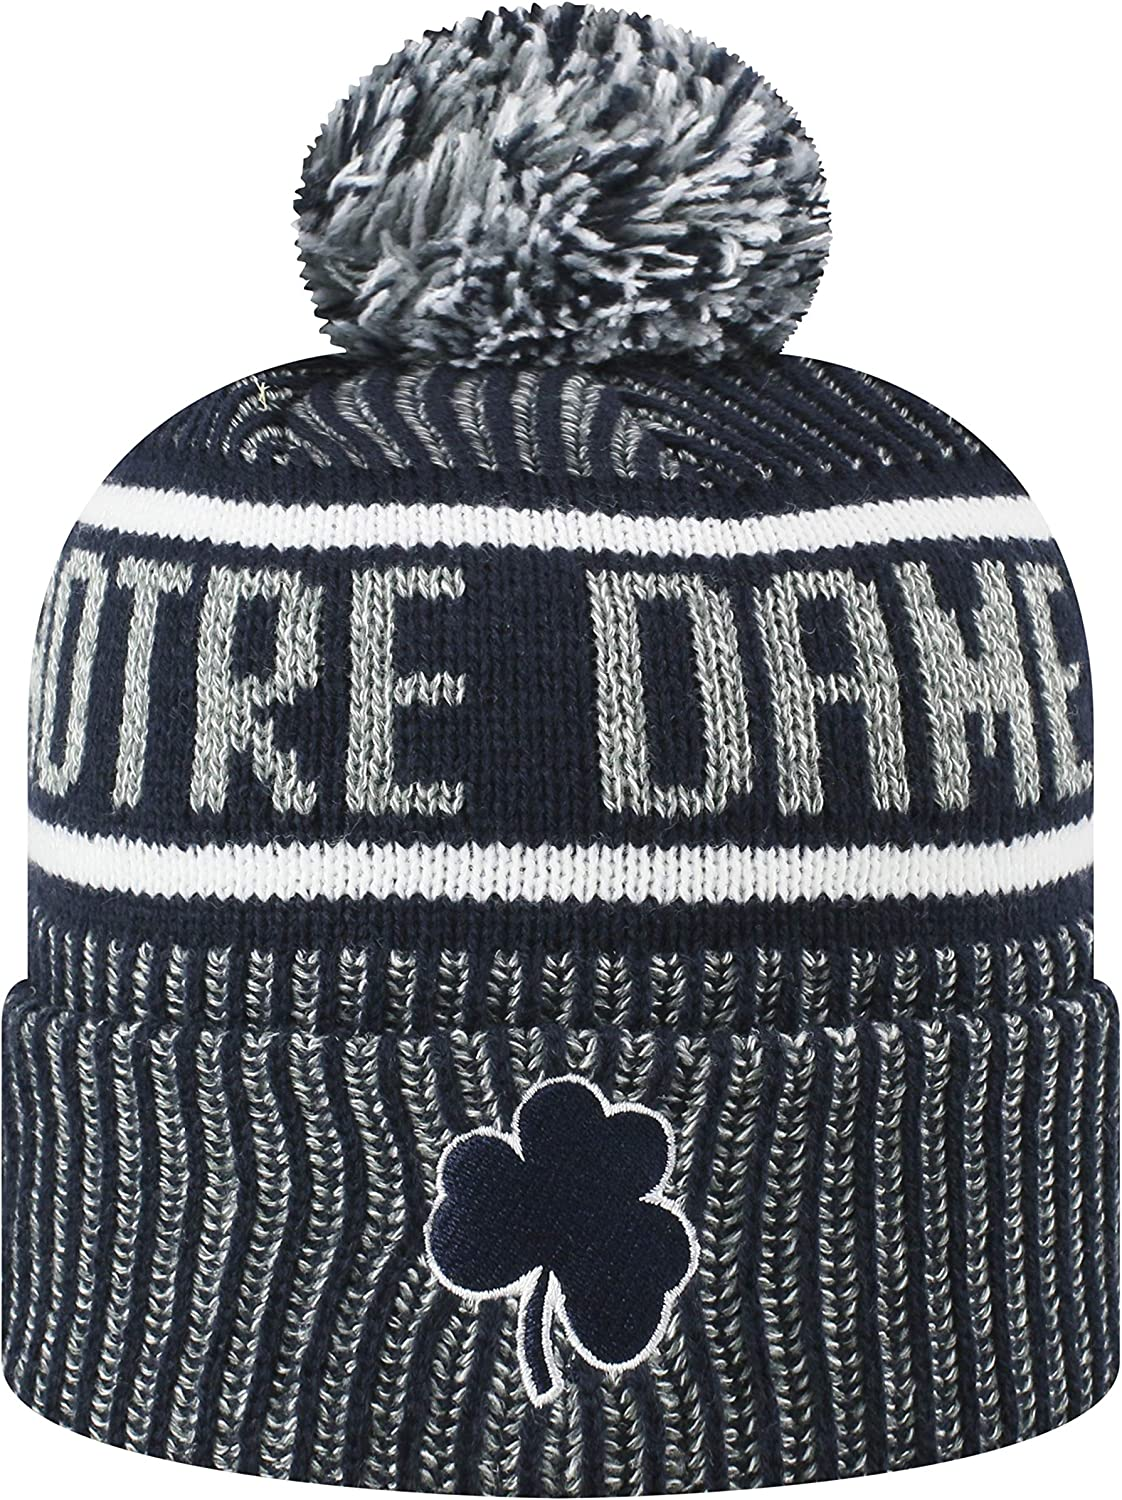 Top of the World Mens NCAA Glacier Cuffed Knit Beanie Pom Hat